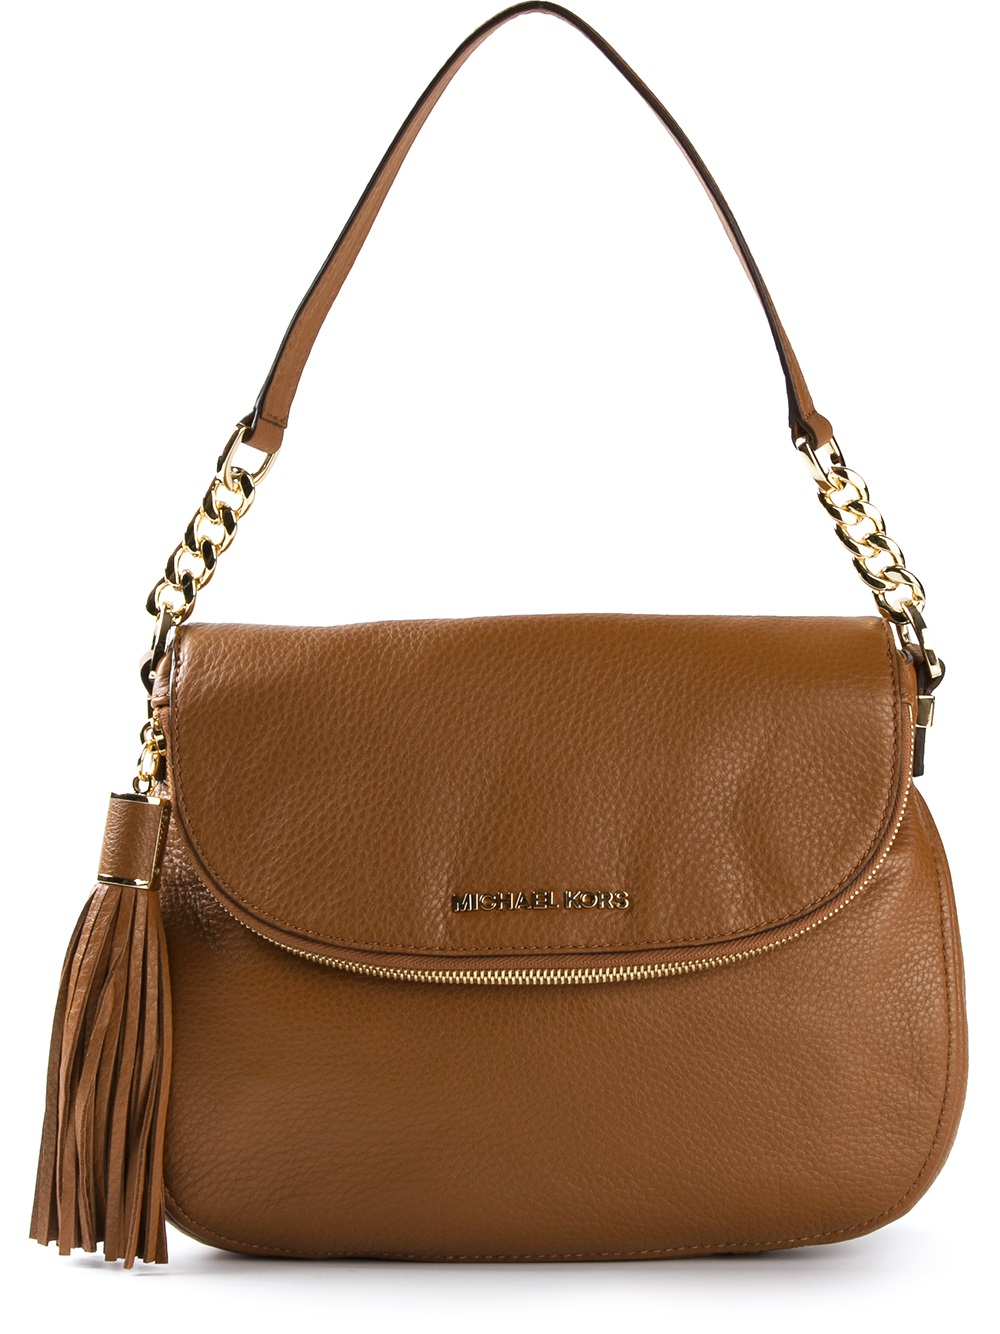 Michael Kors cashback discounts can be earned just by clicking through to Michael Kors and then shopping exactly as you would normally on their website.